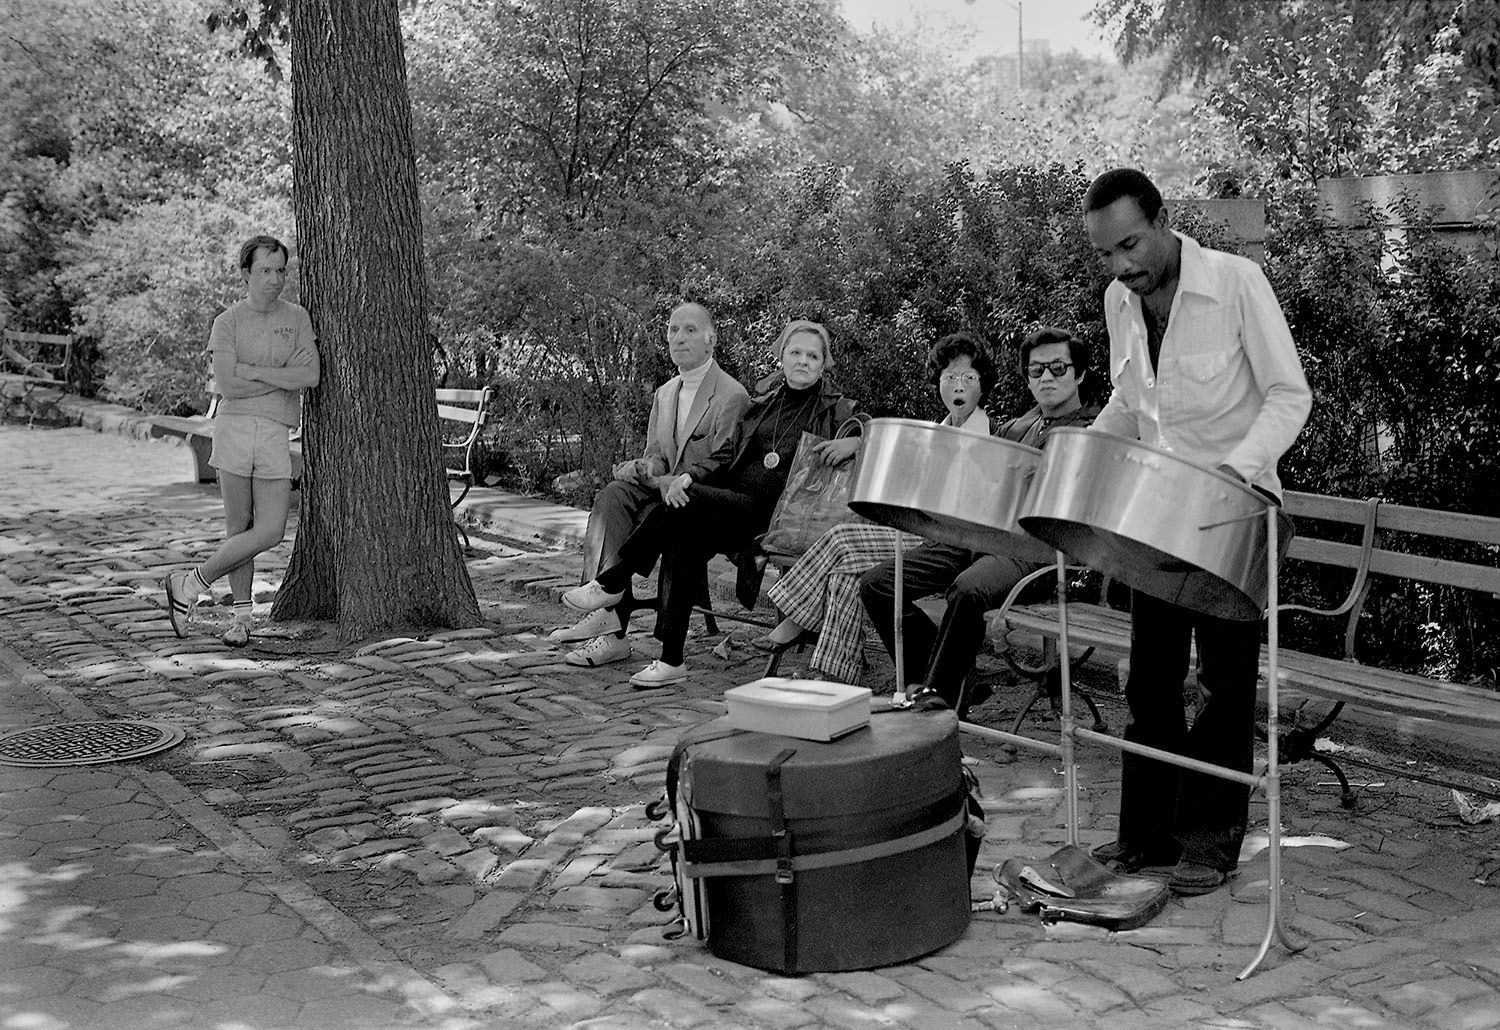 Musician with Steel Drums